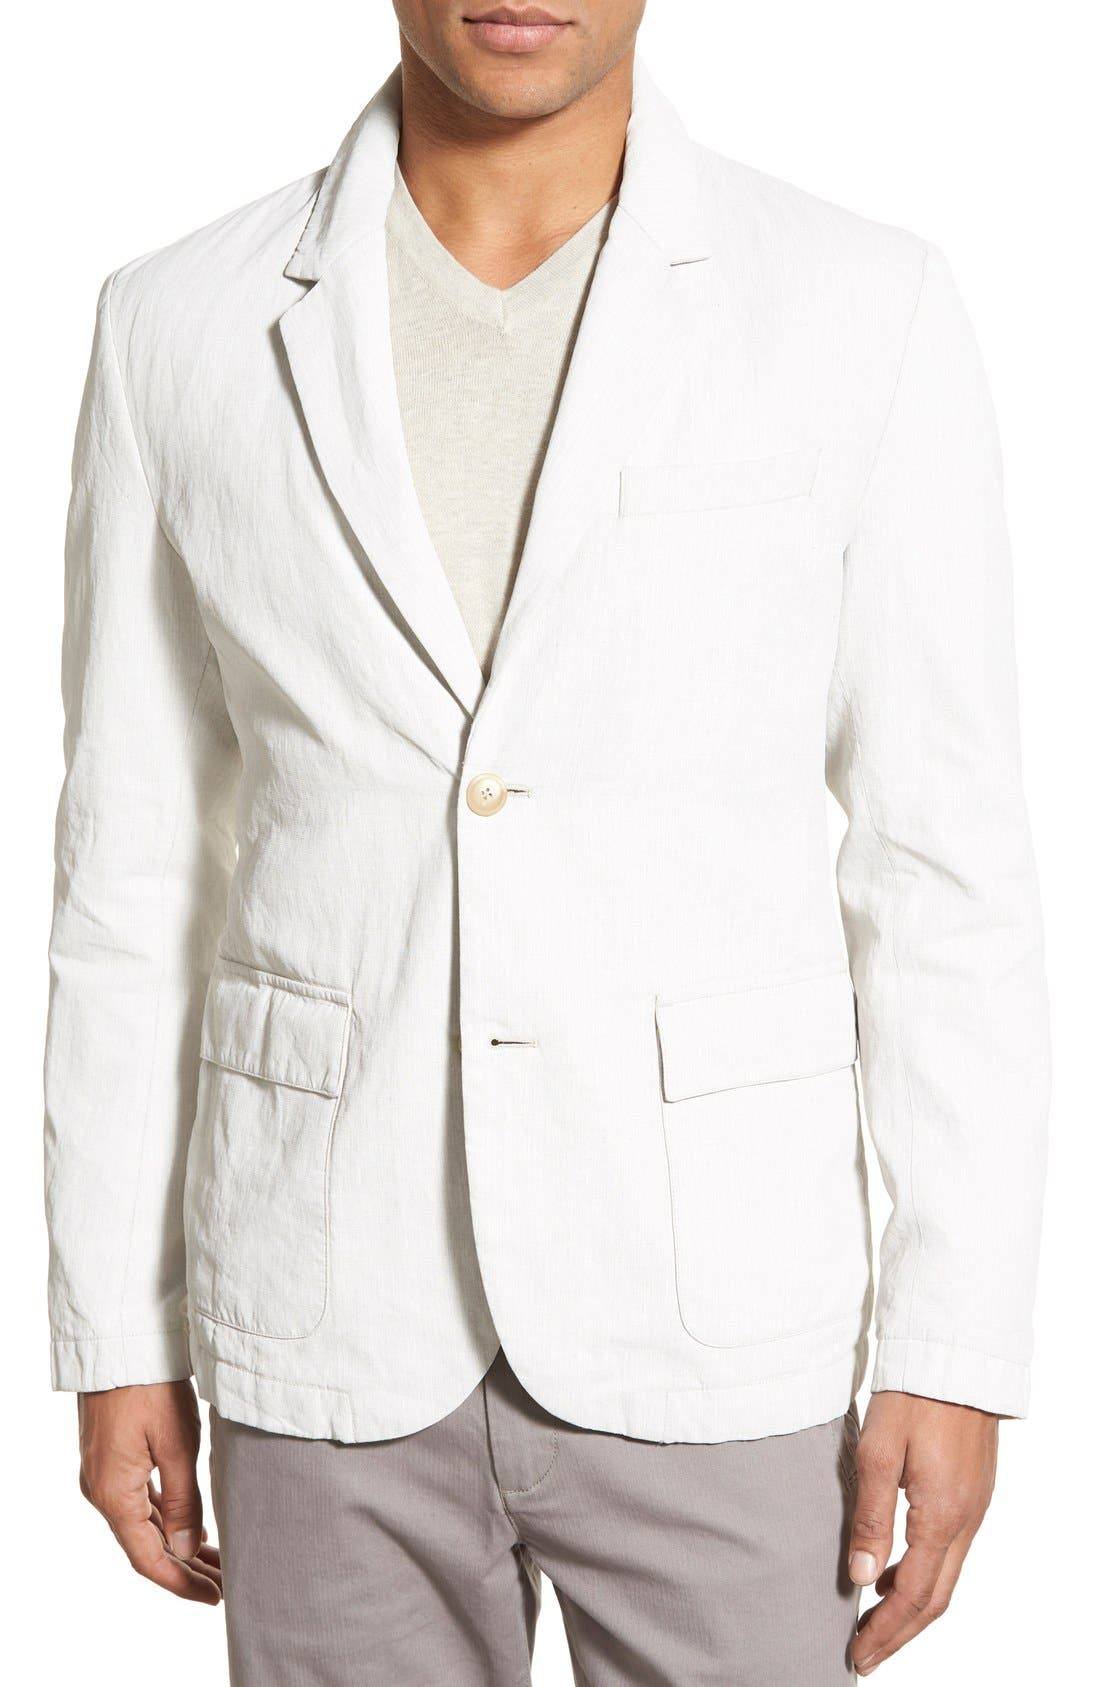 James Perse Linen Blend Unconstructed Sport Coat